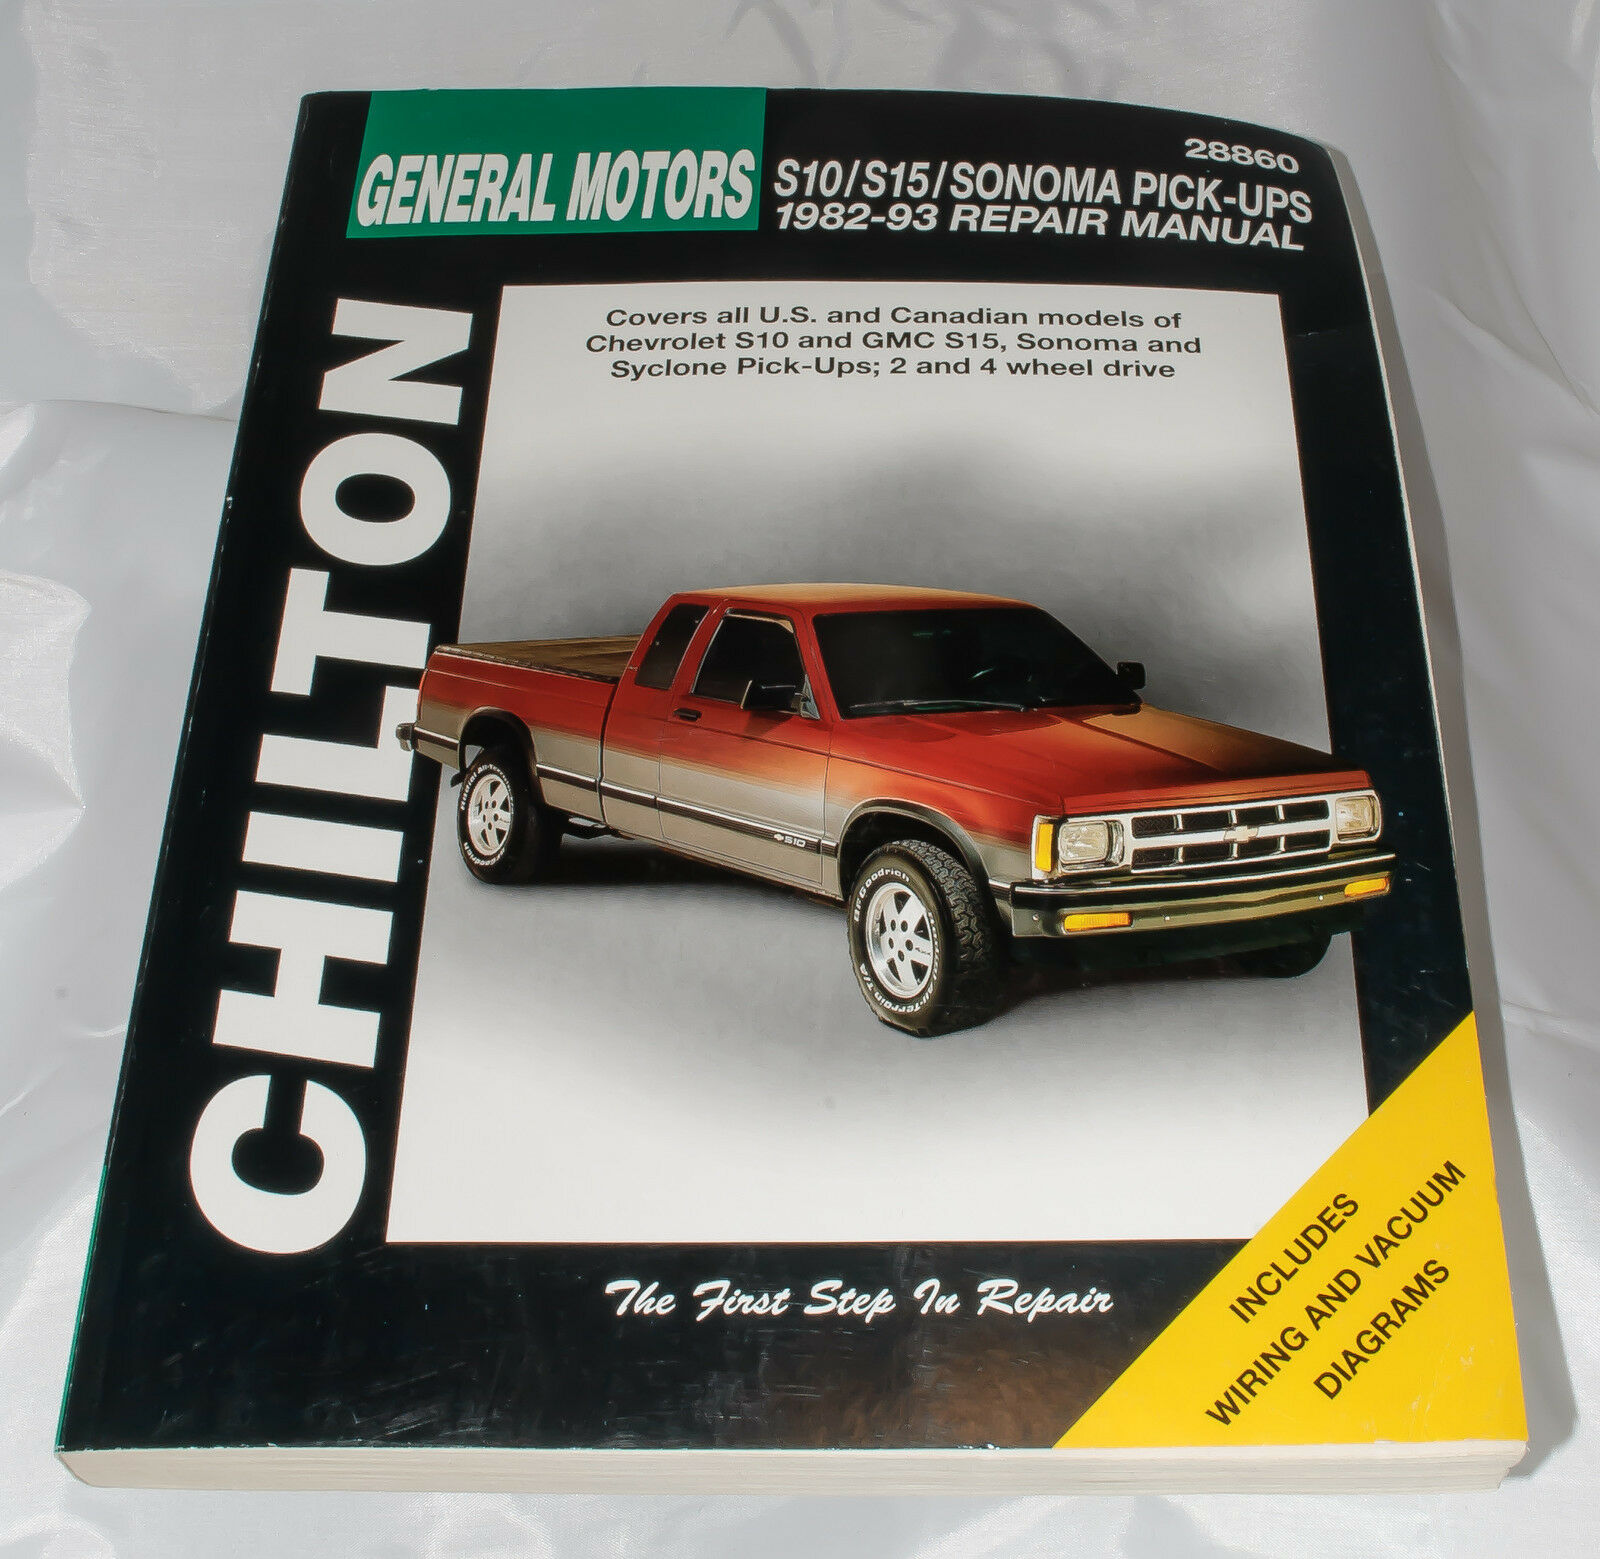 Chilton General Motors Chevrolet S10 GMC S15 Pick-ups 1982 - 94 Repair  Manual | eBay